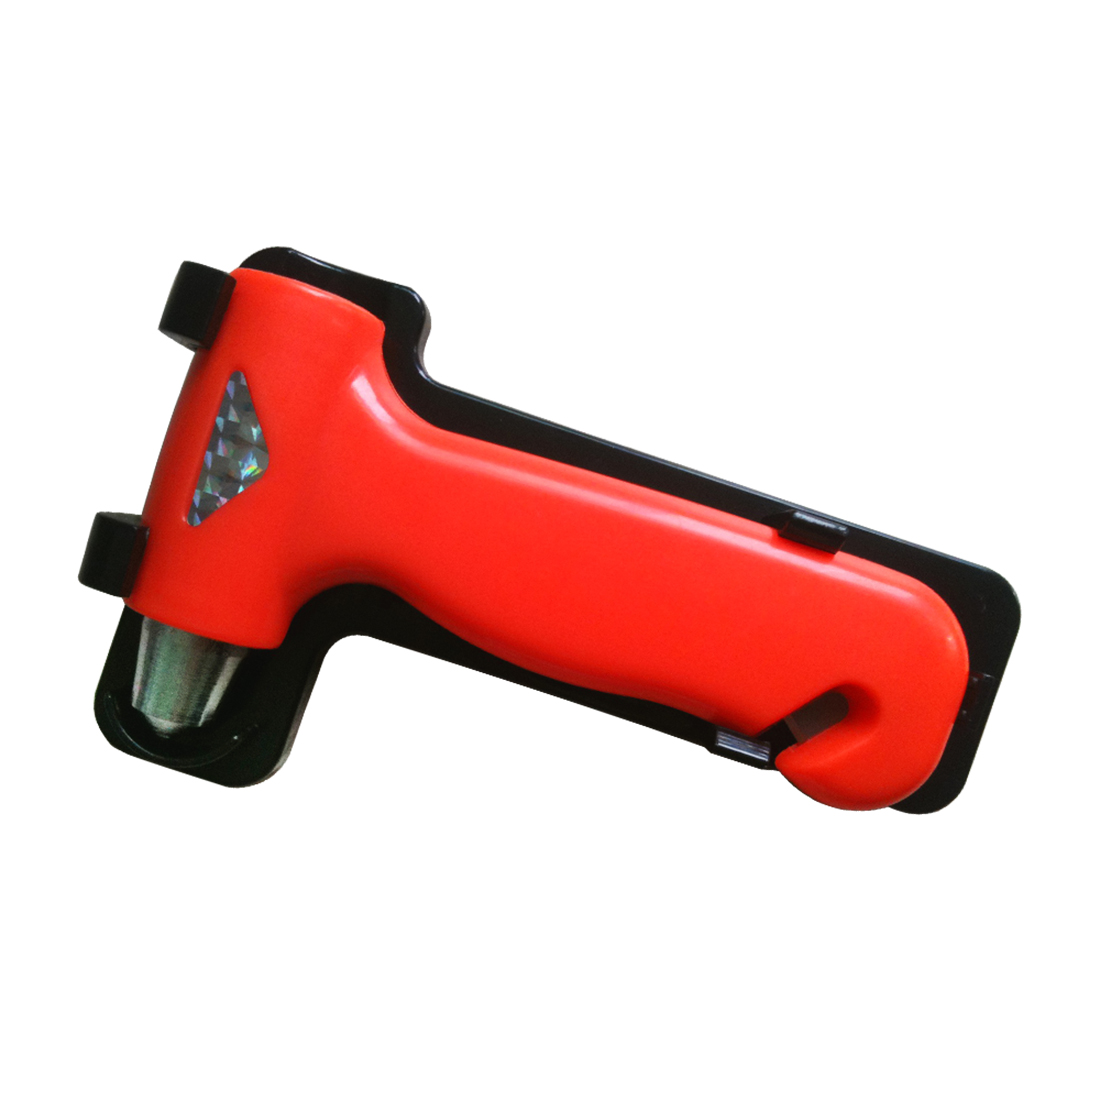 3-in-1 Multi function Rechargeble LED Flashlight, Hammer  amp  Cutter c6a116055f0d